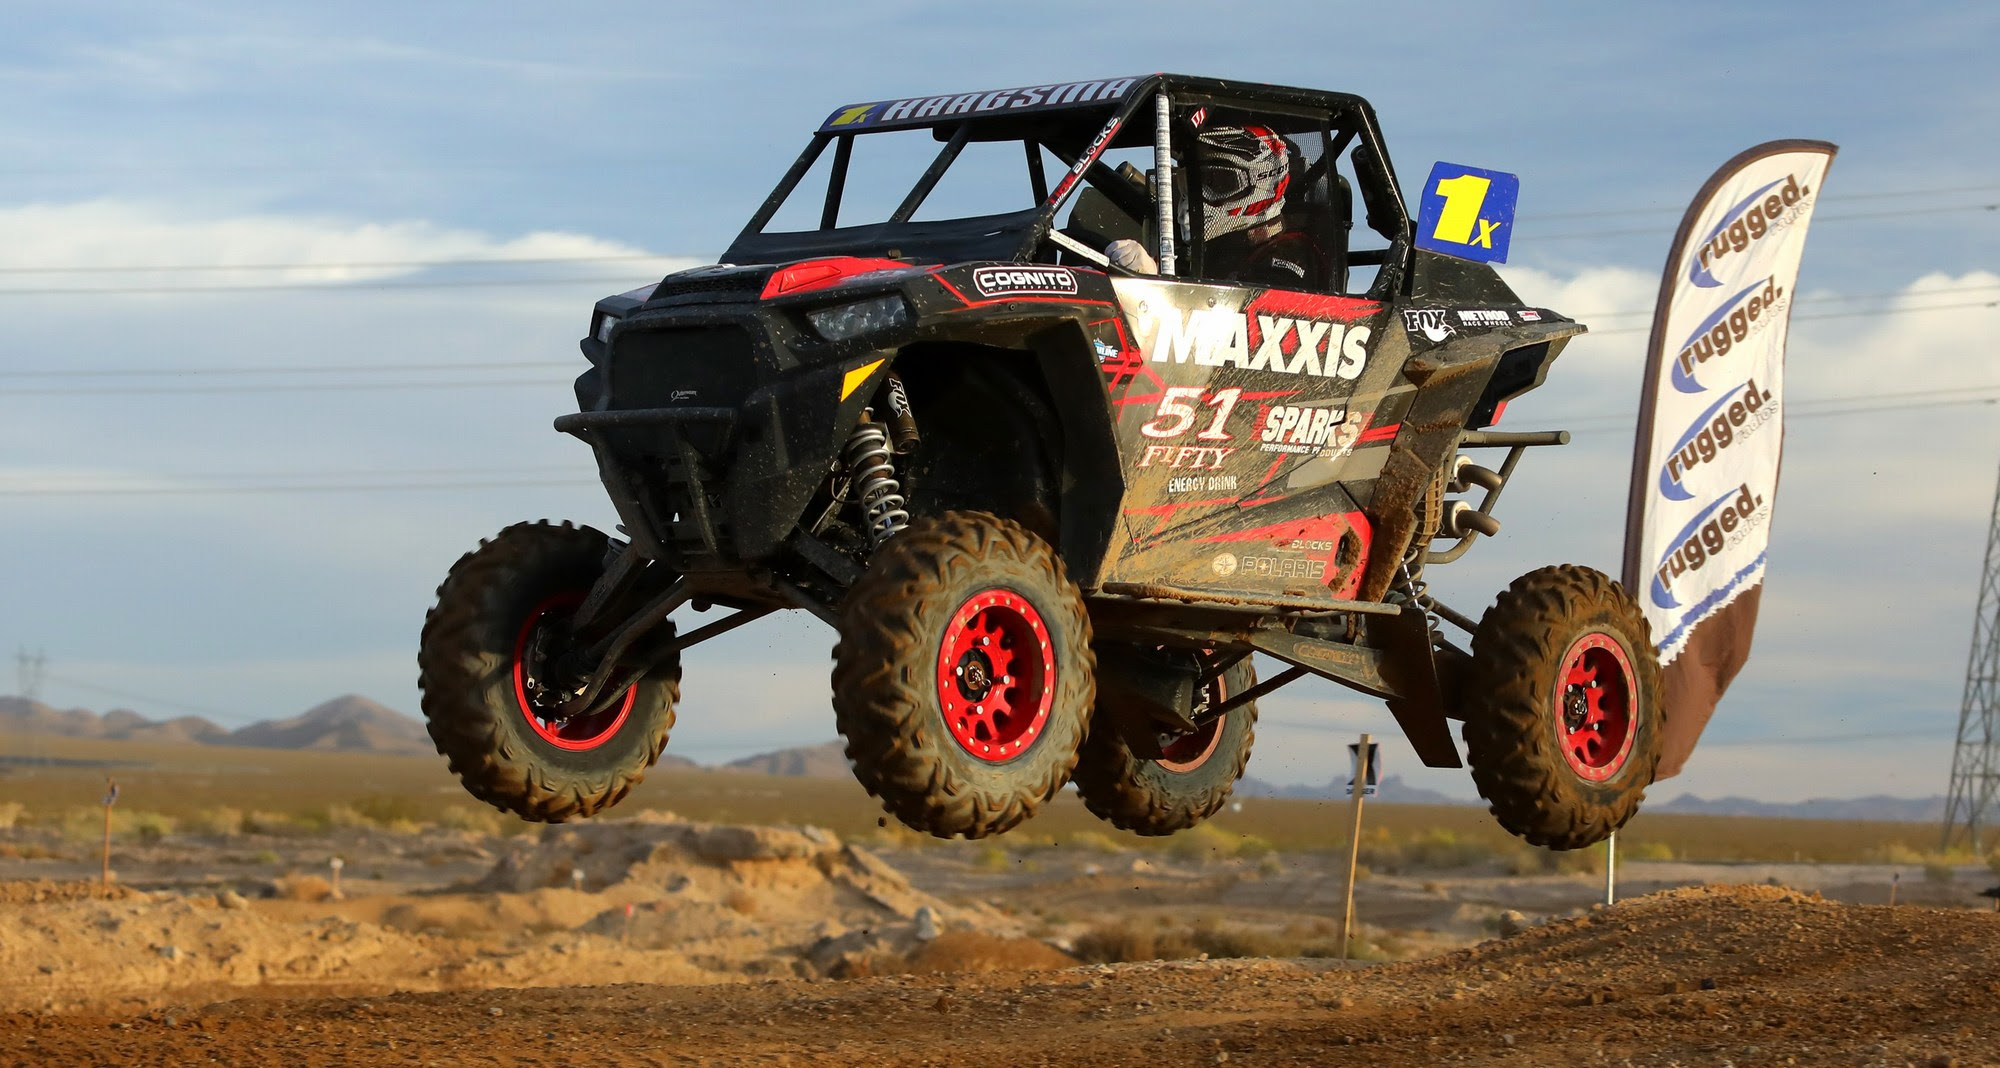 2018-09-david-haagsma-desert-rugged-radios-utv-worcs-racing